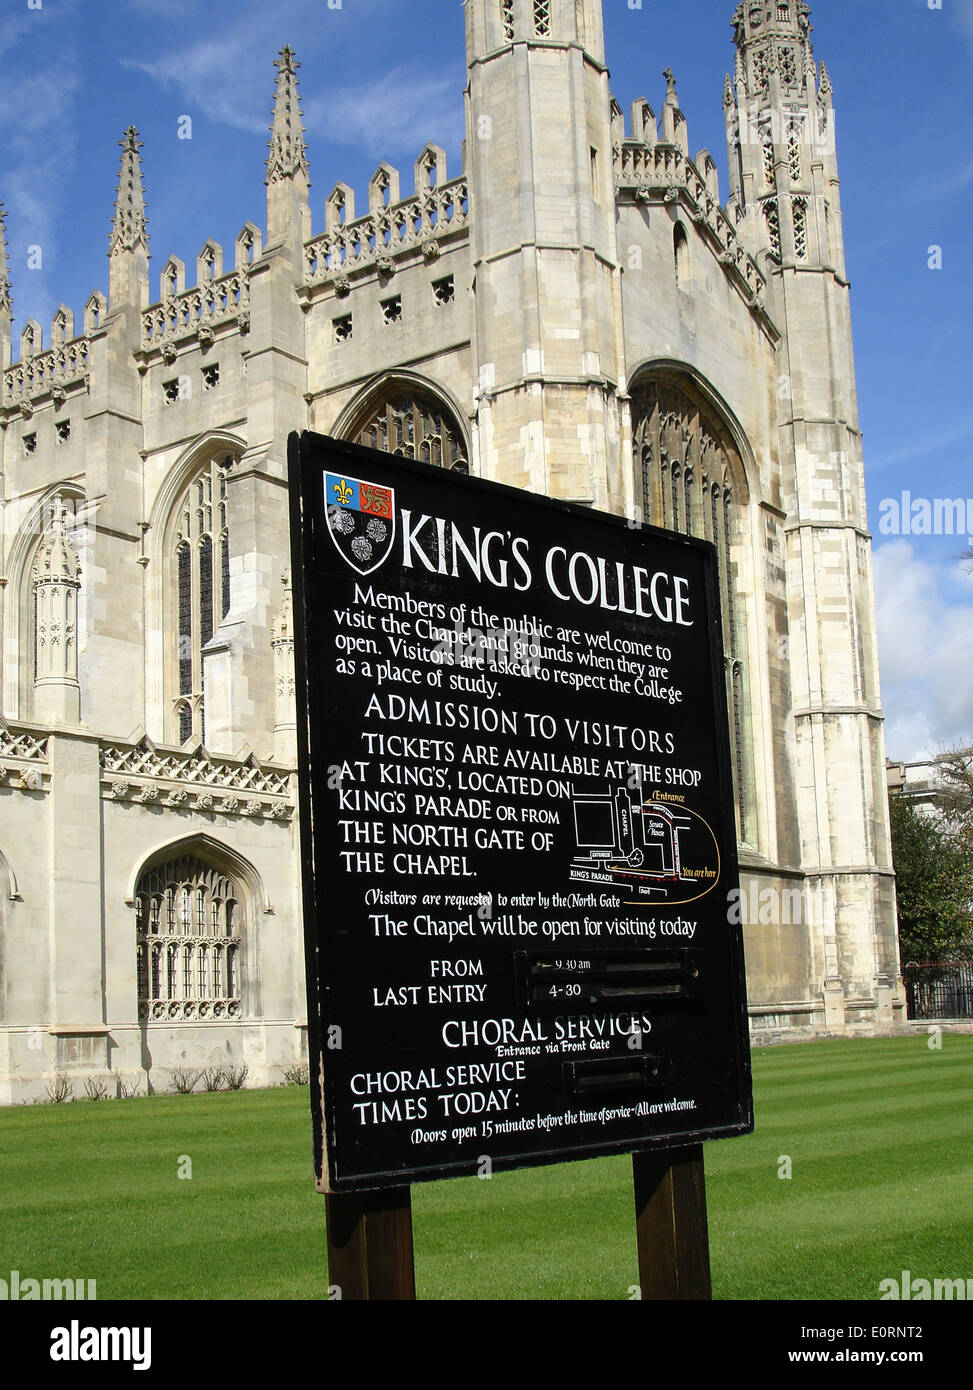 Kings College Chapel, Cambridge, UK - Stock Image